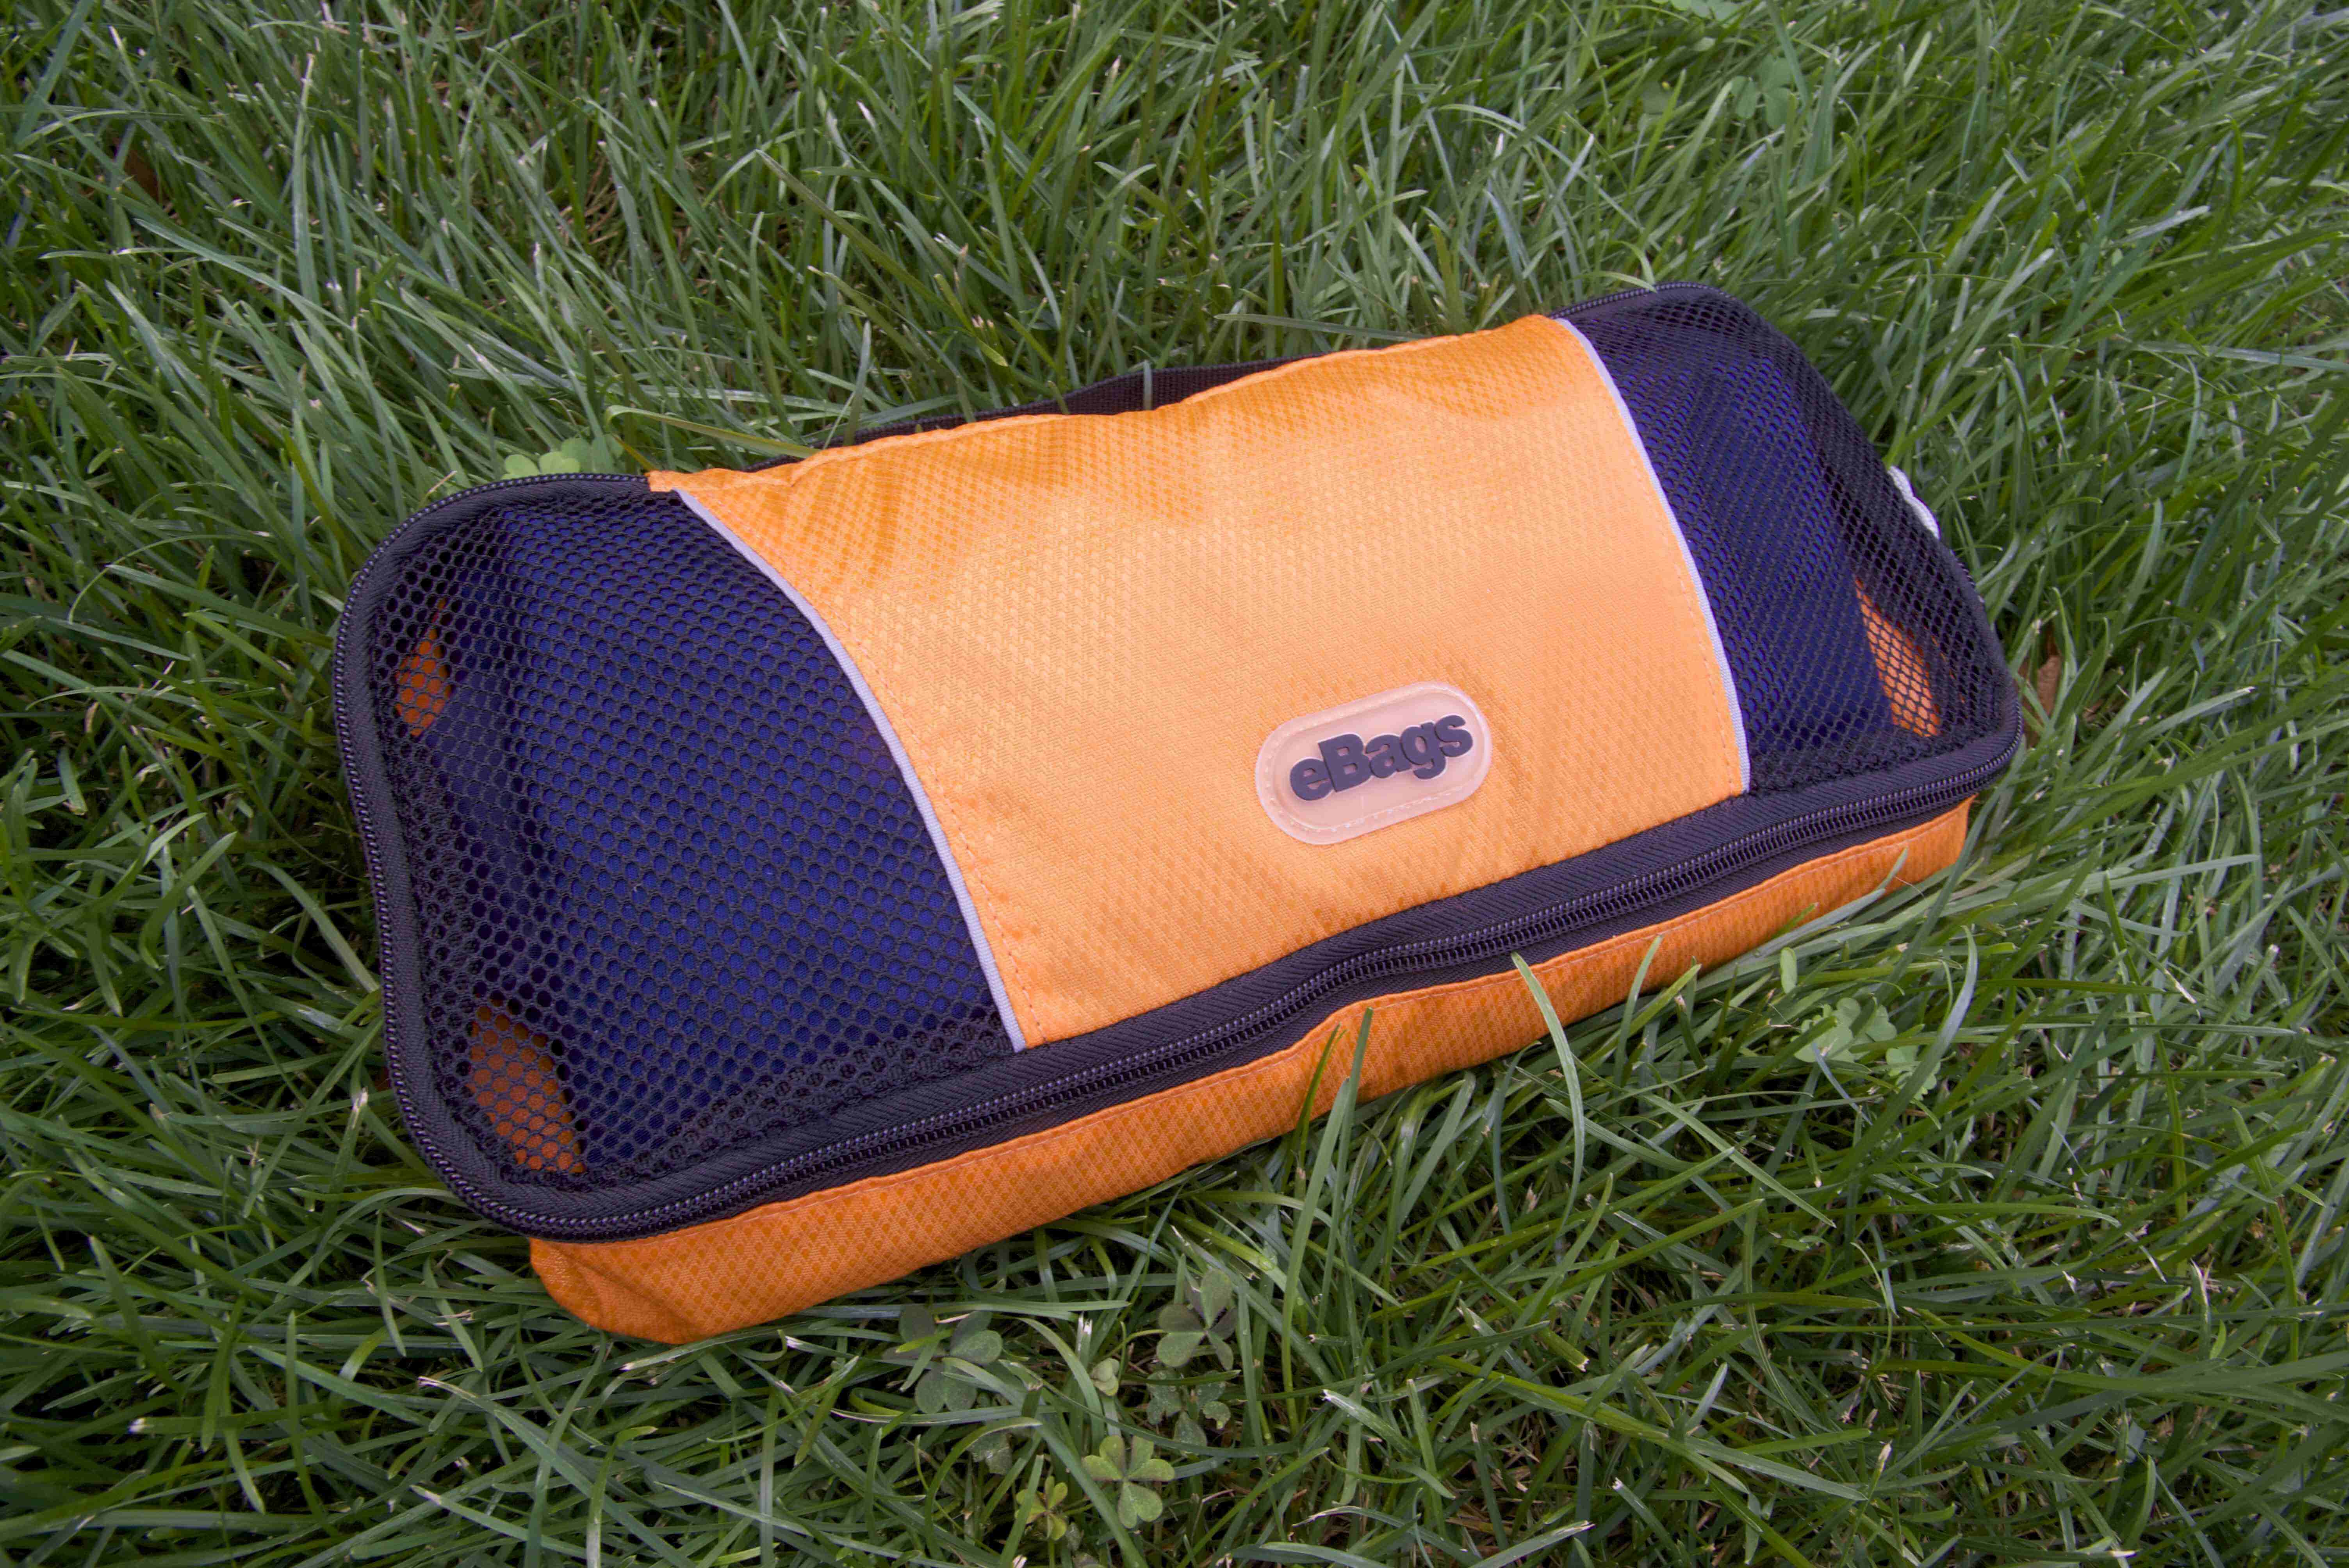 eBags Packing Cube Review: A Solid and Useful Travel Accessory